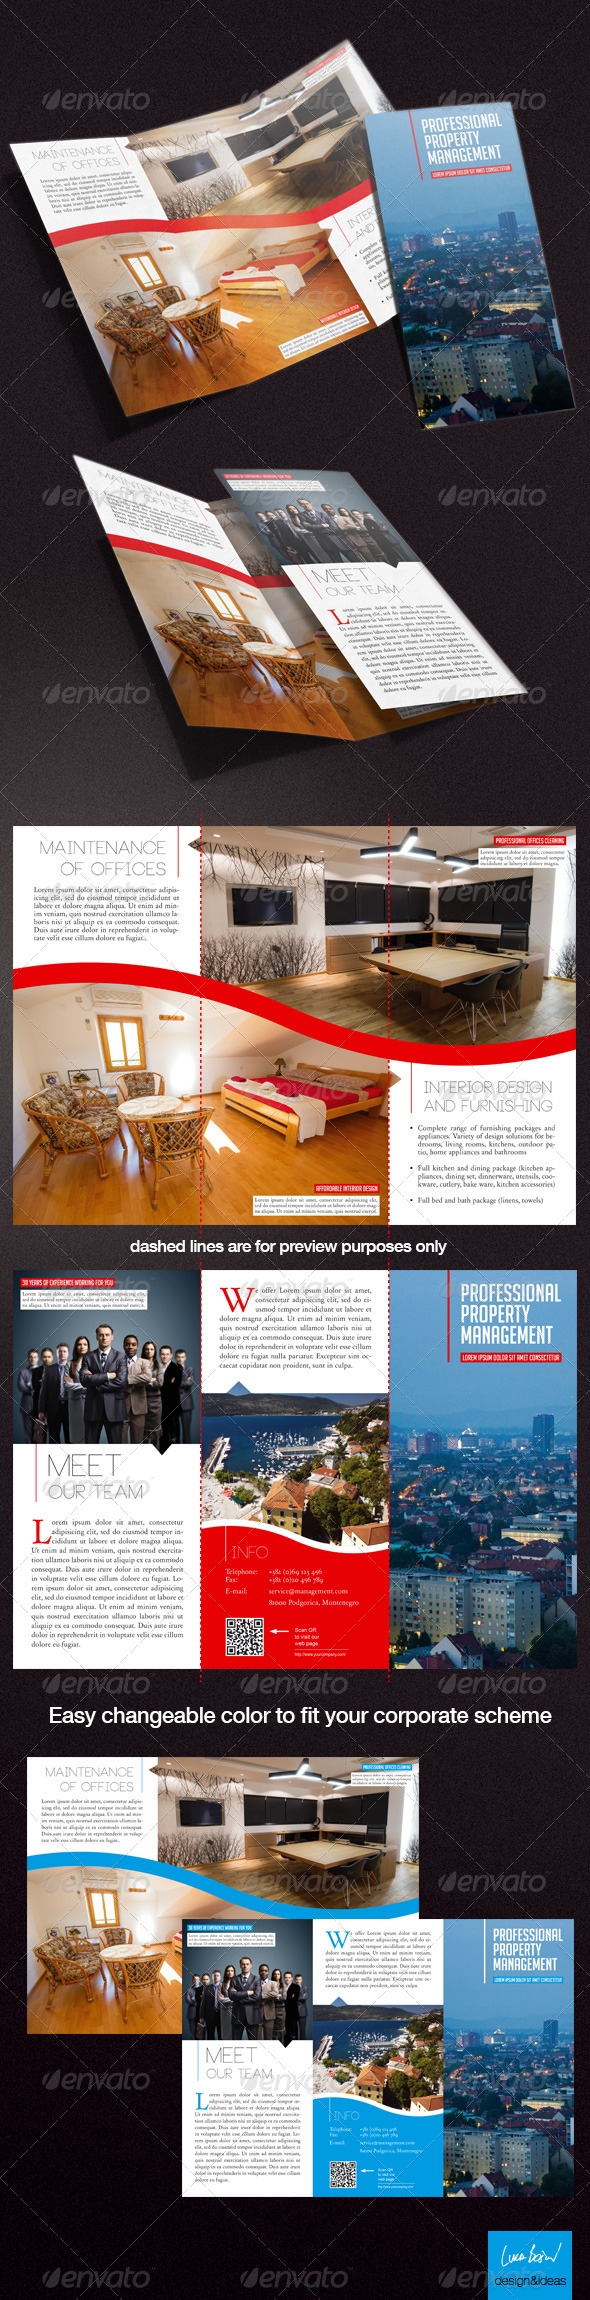 GraphicRiver Property Management Trifold Brochure 4054802